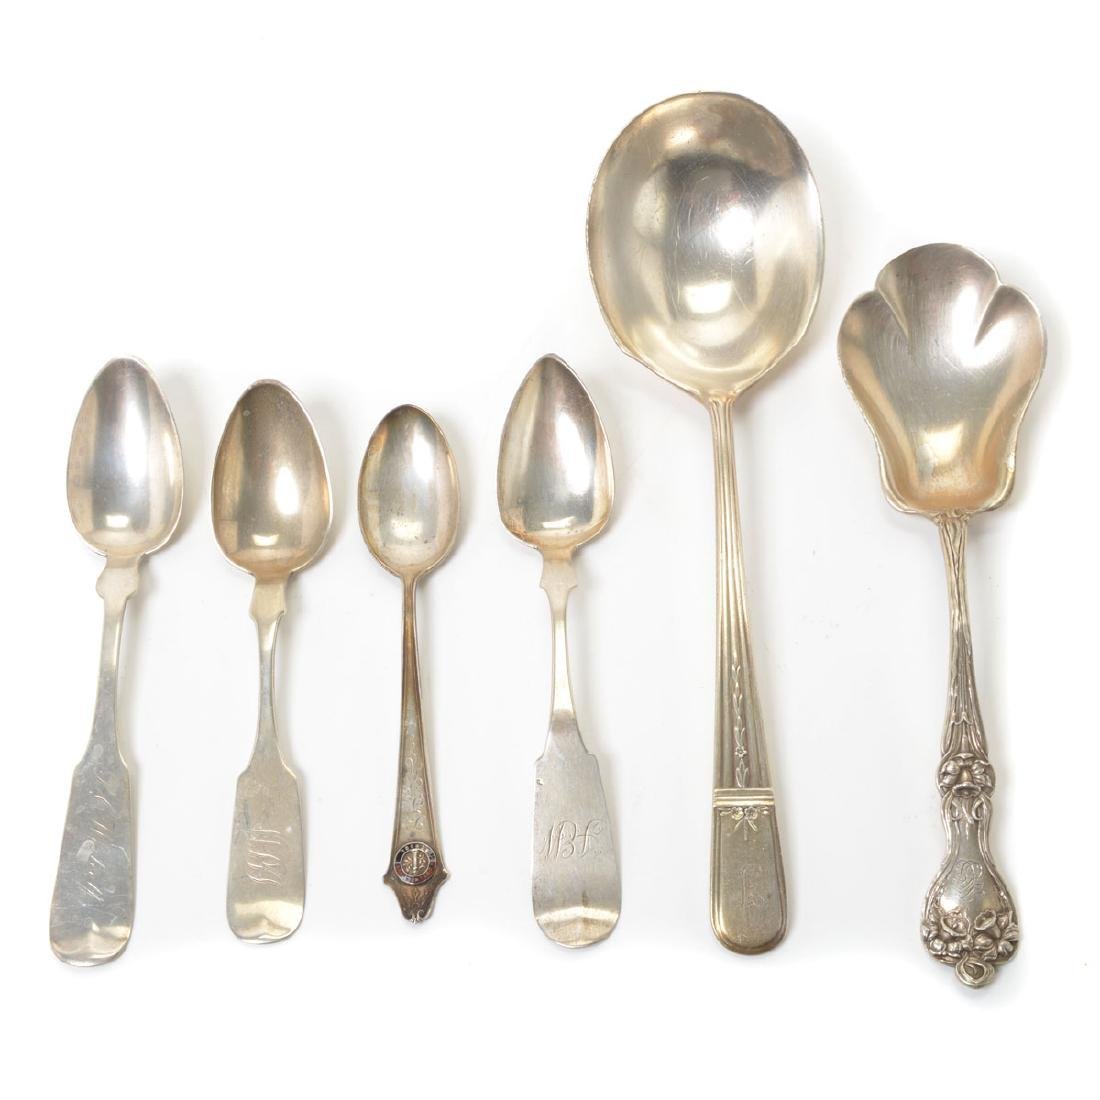 Assorted Coin Silver Flatware with Souvenir Spoons